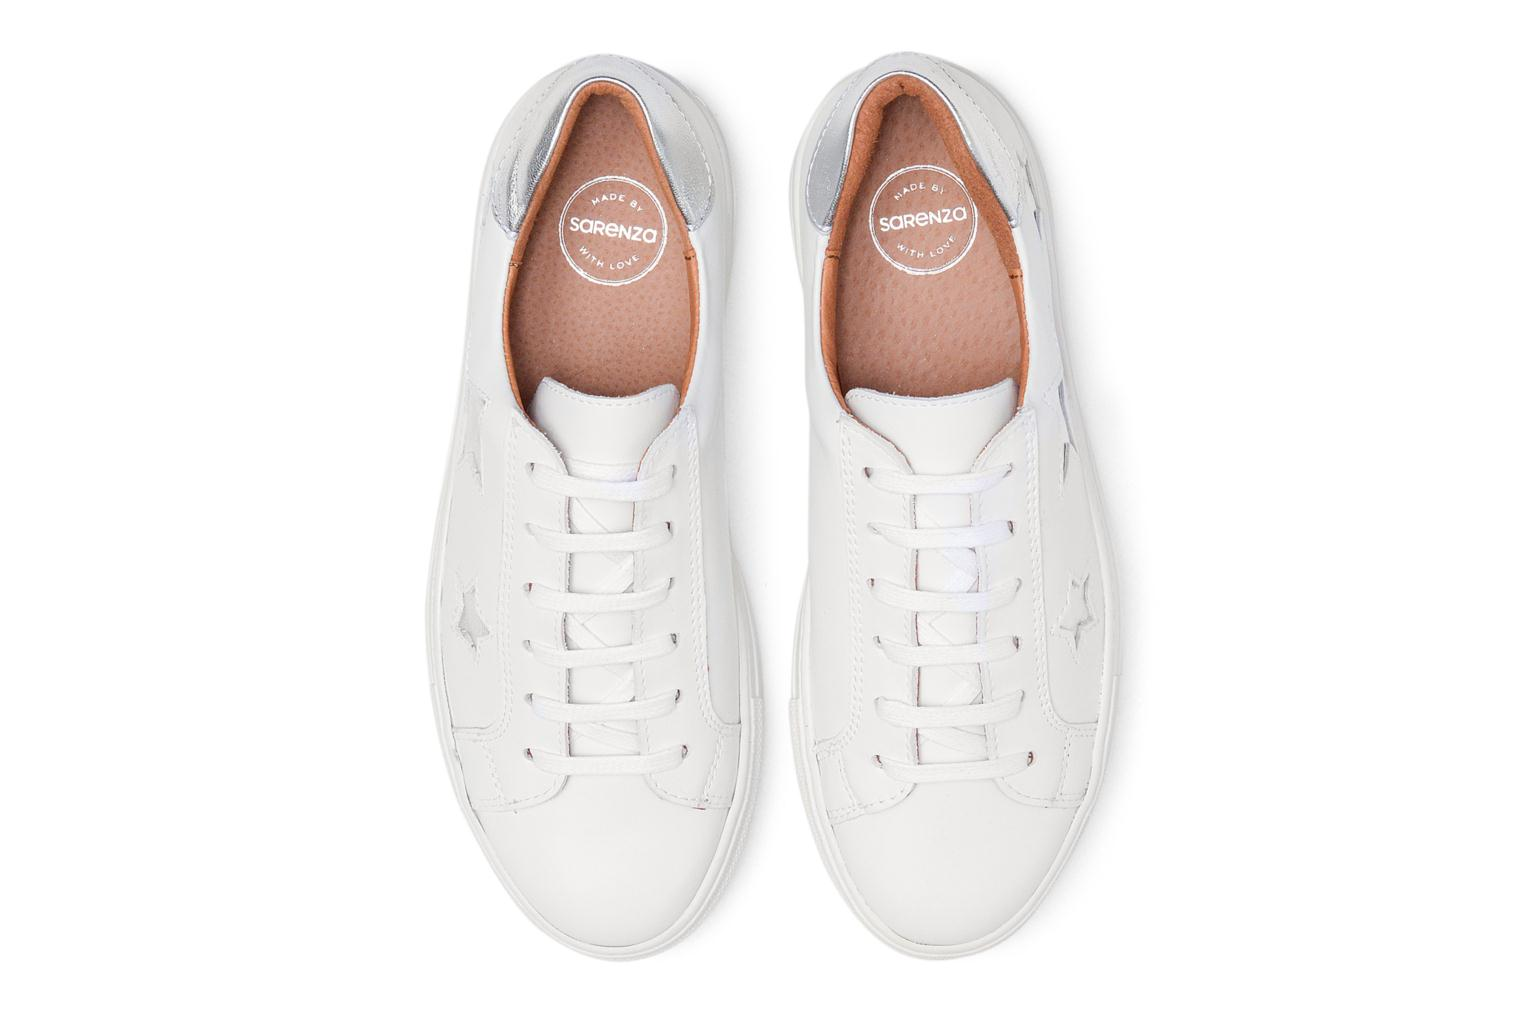 Fluo Girls Cuir Lisse Baskets Rose Made Blanc By Gang Sarenza 90s LSUzMjVGpq